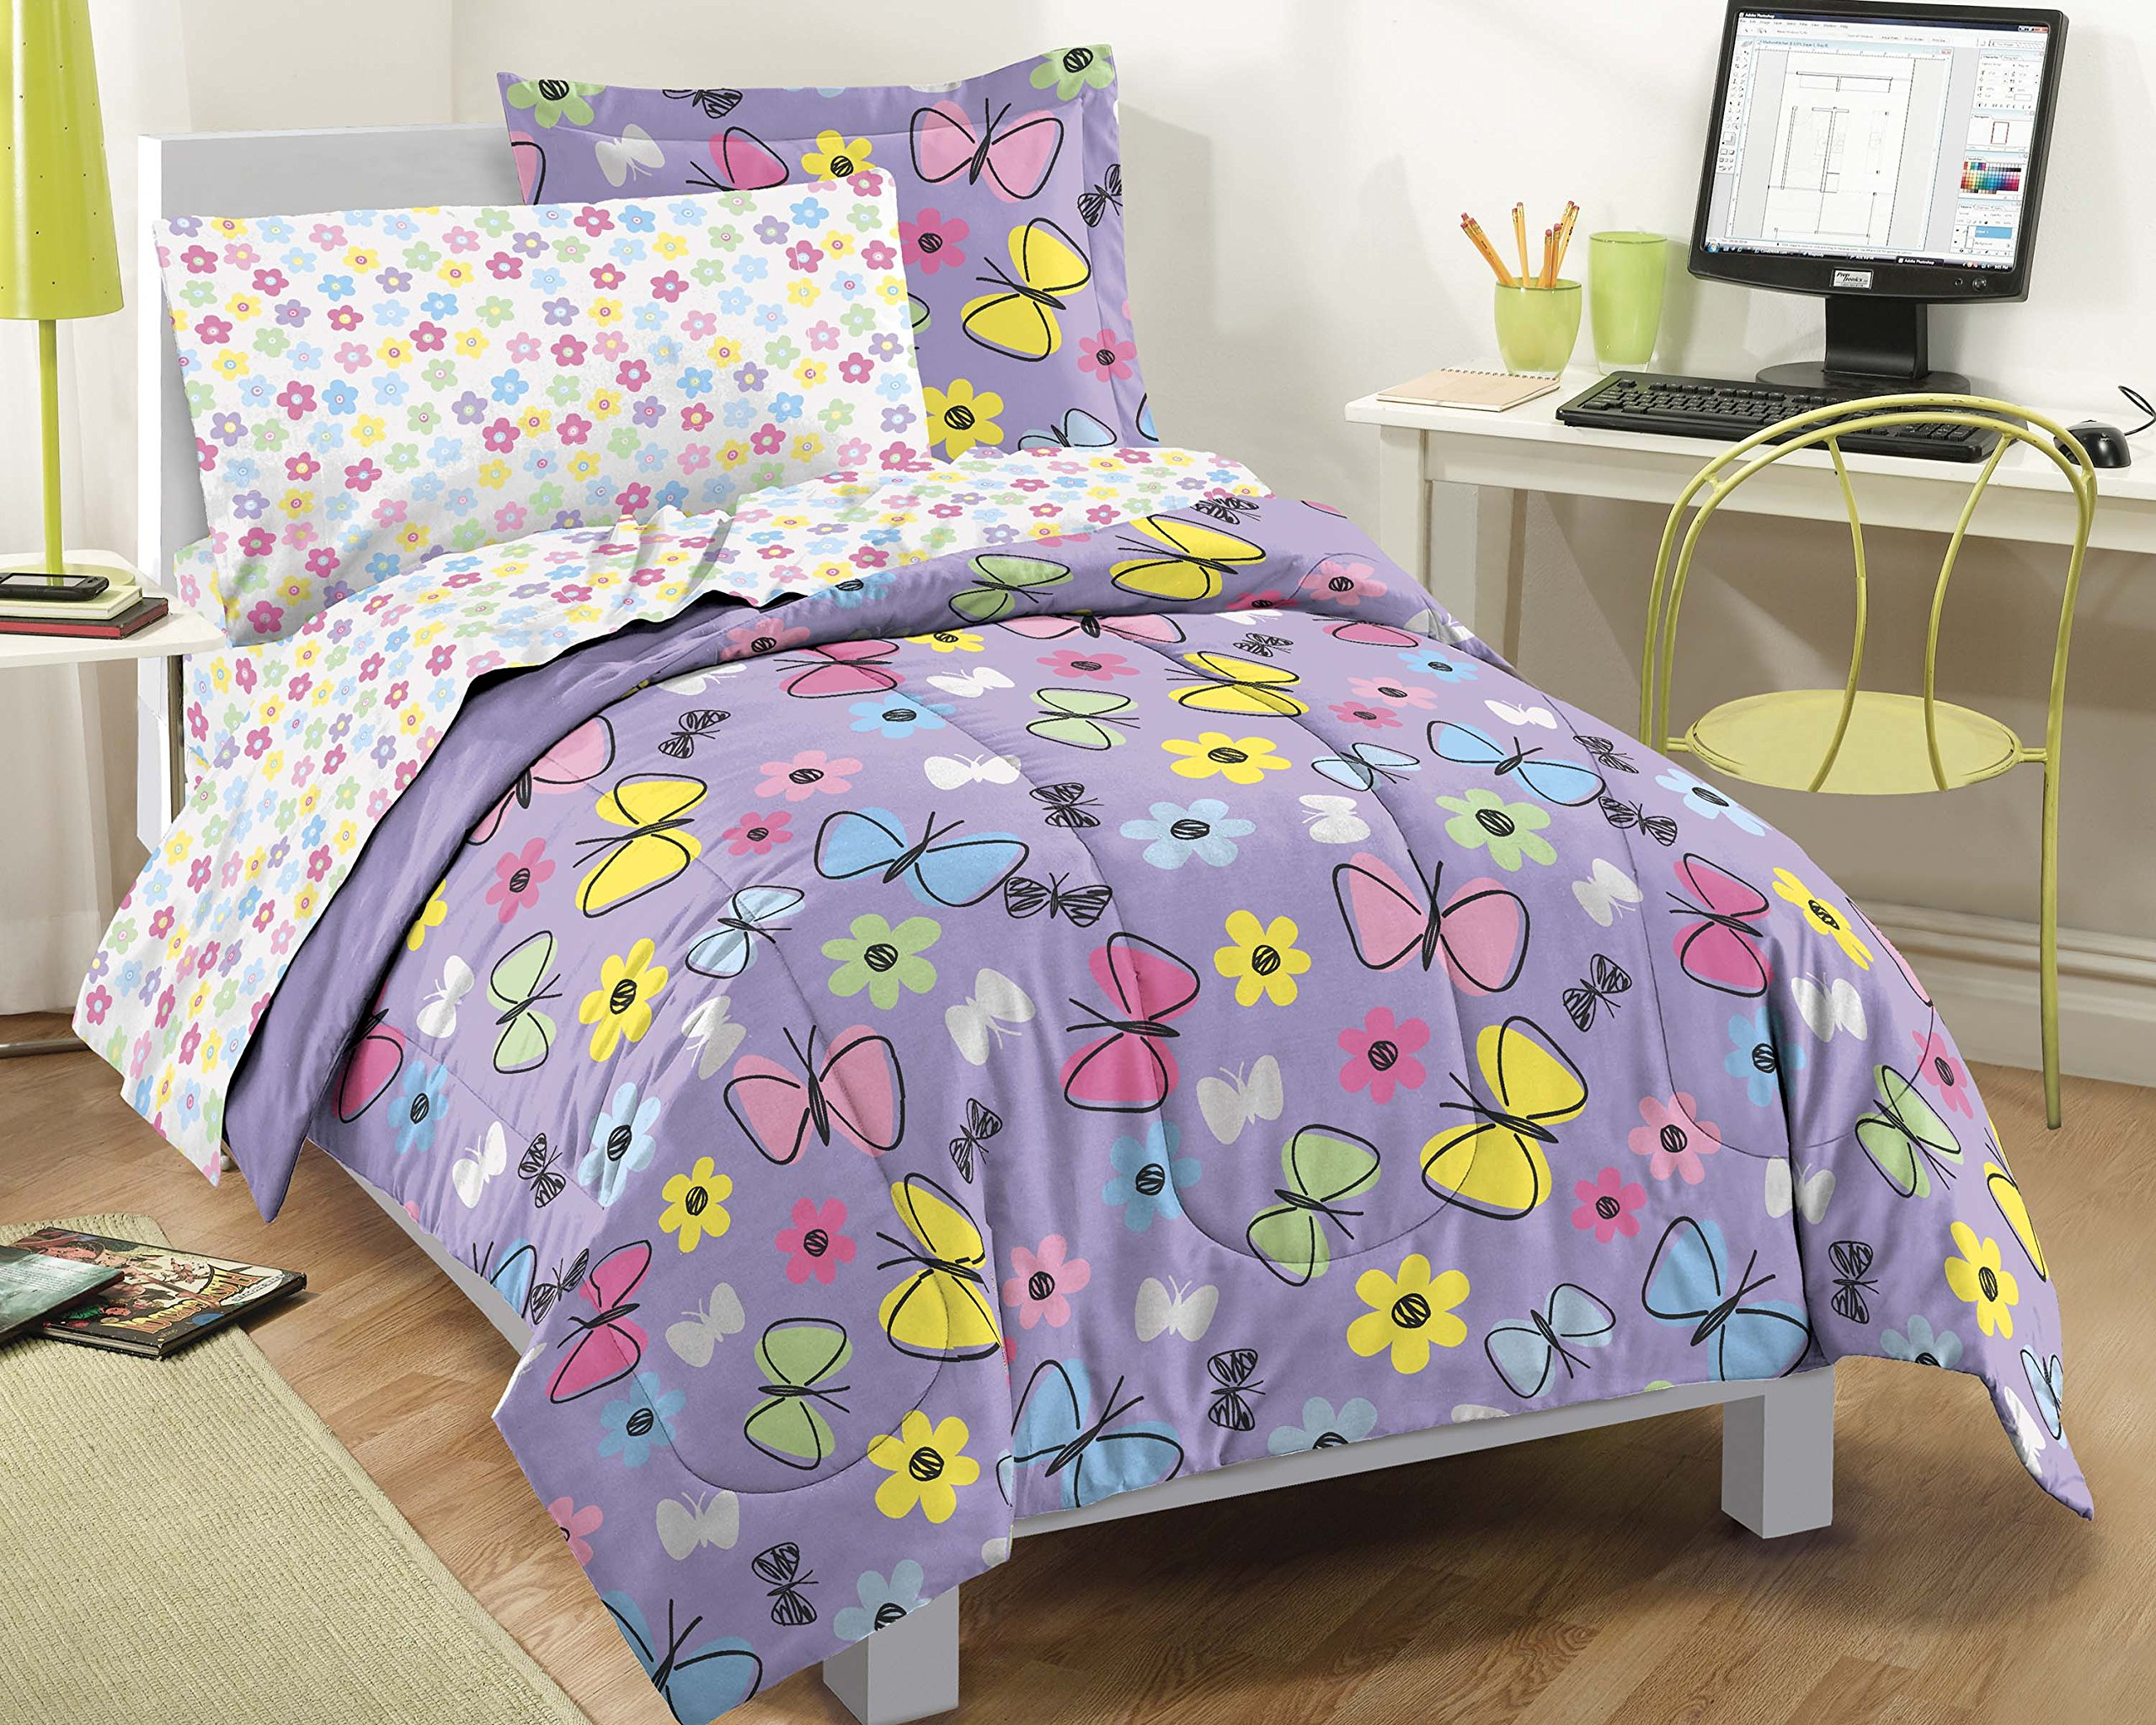 rooms sets duvet bedding larger best about kids girls cover curtains and quilt l or ideas colorful covers view